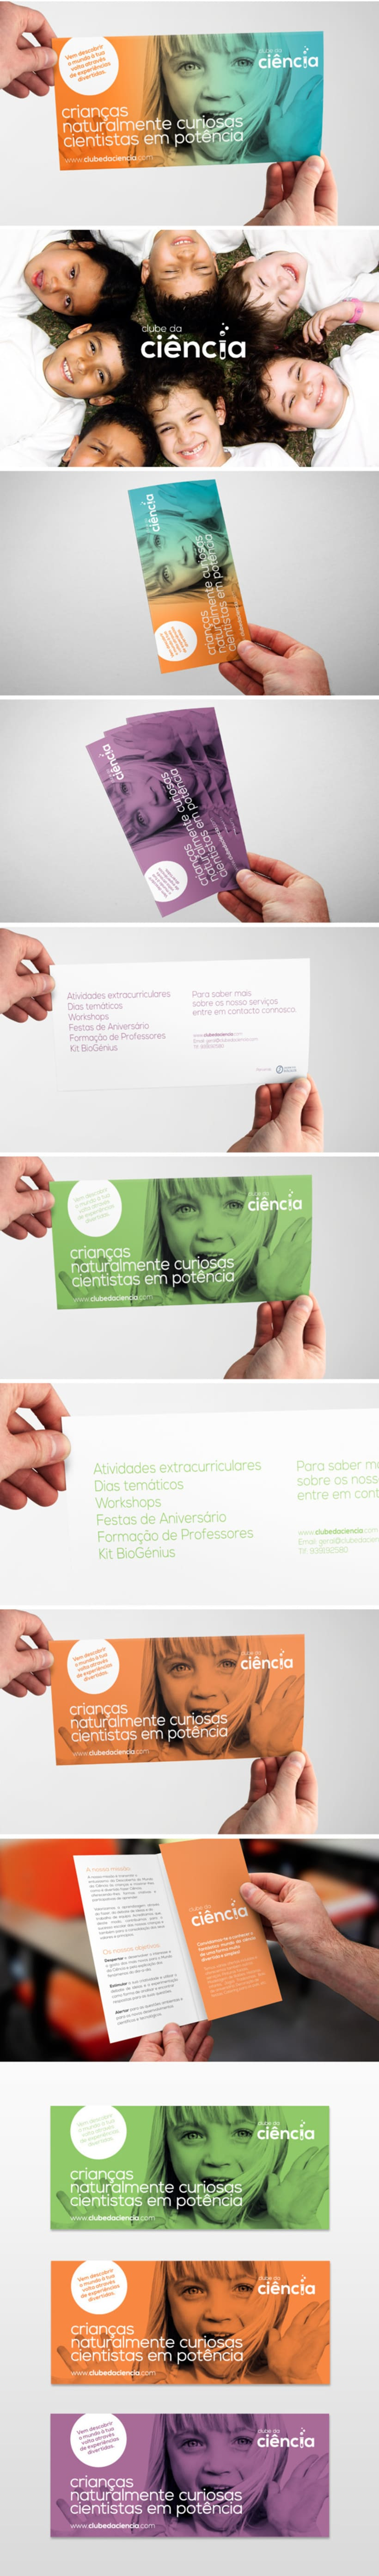 Kids Science Club (Brand, Identity, Flyer) -1